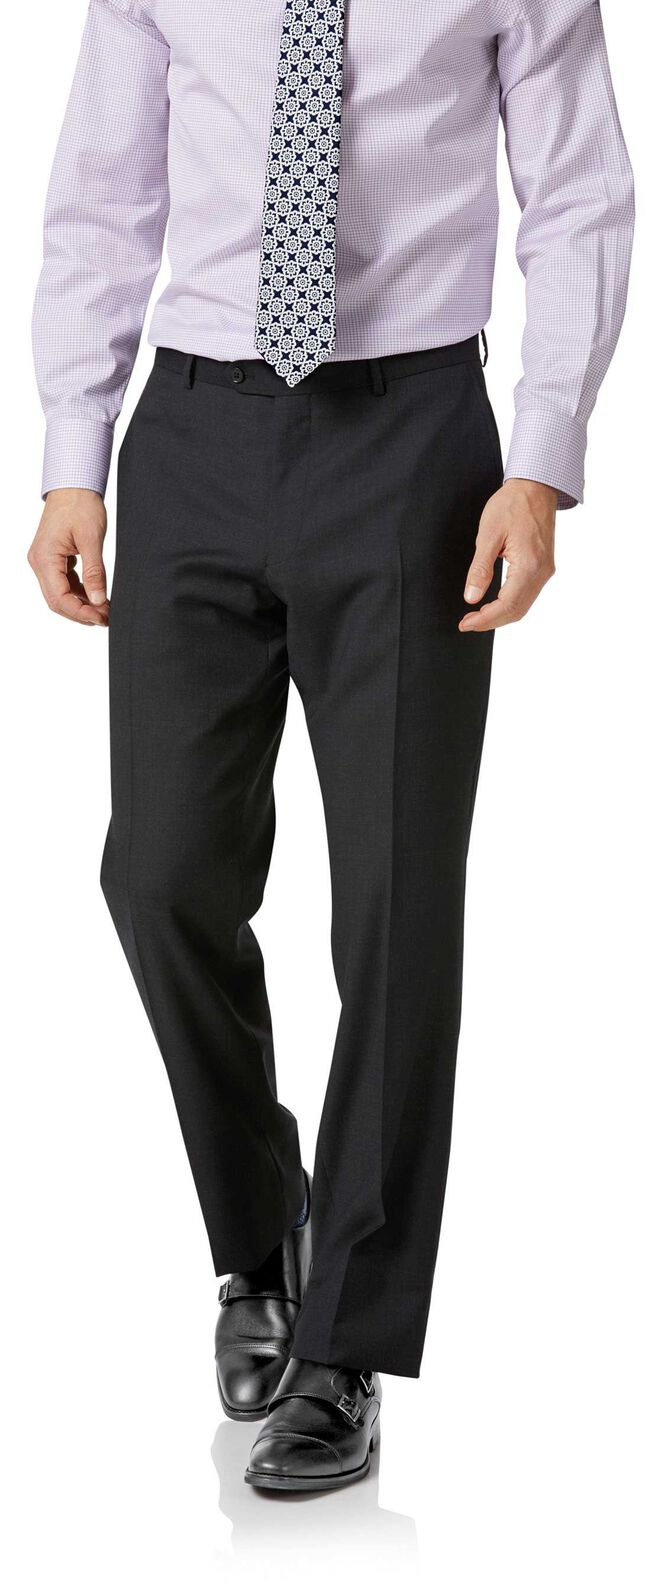 Charcoal twill classic fit business suit